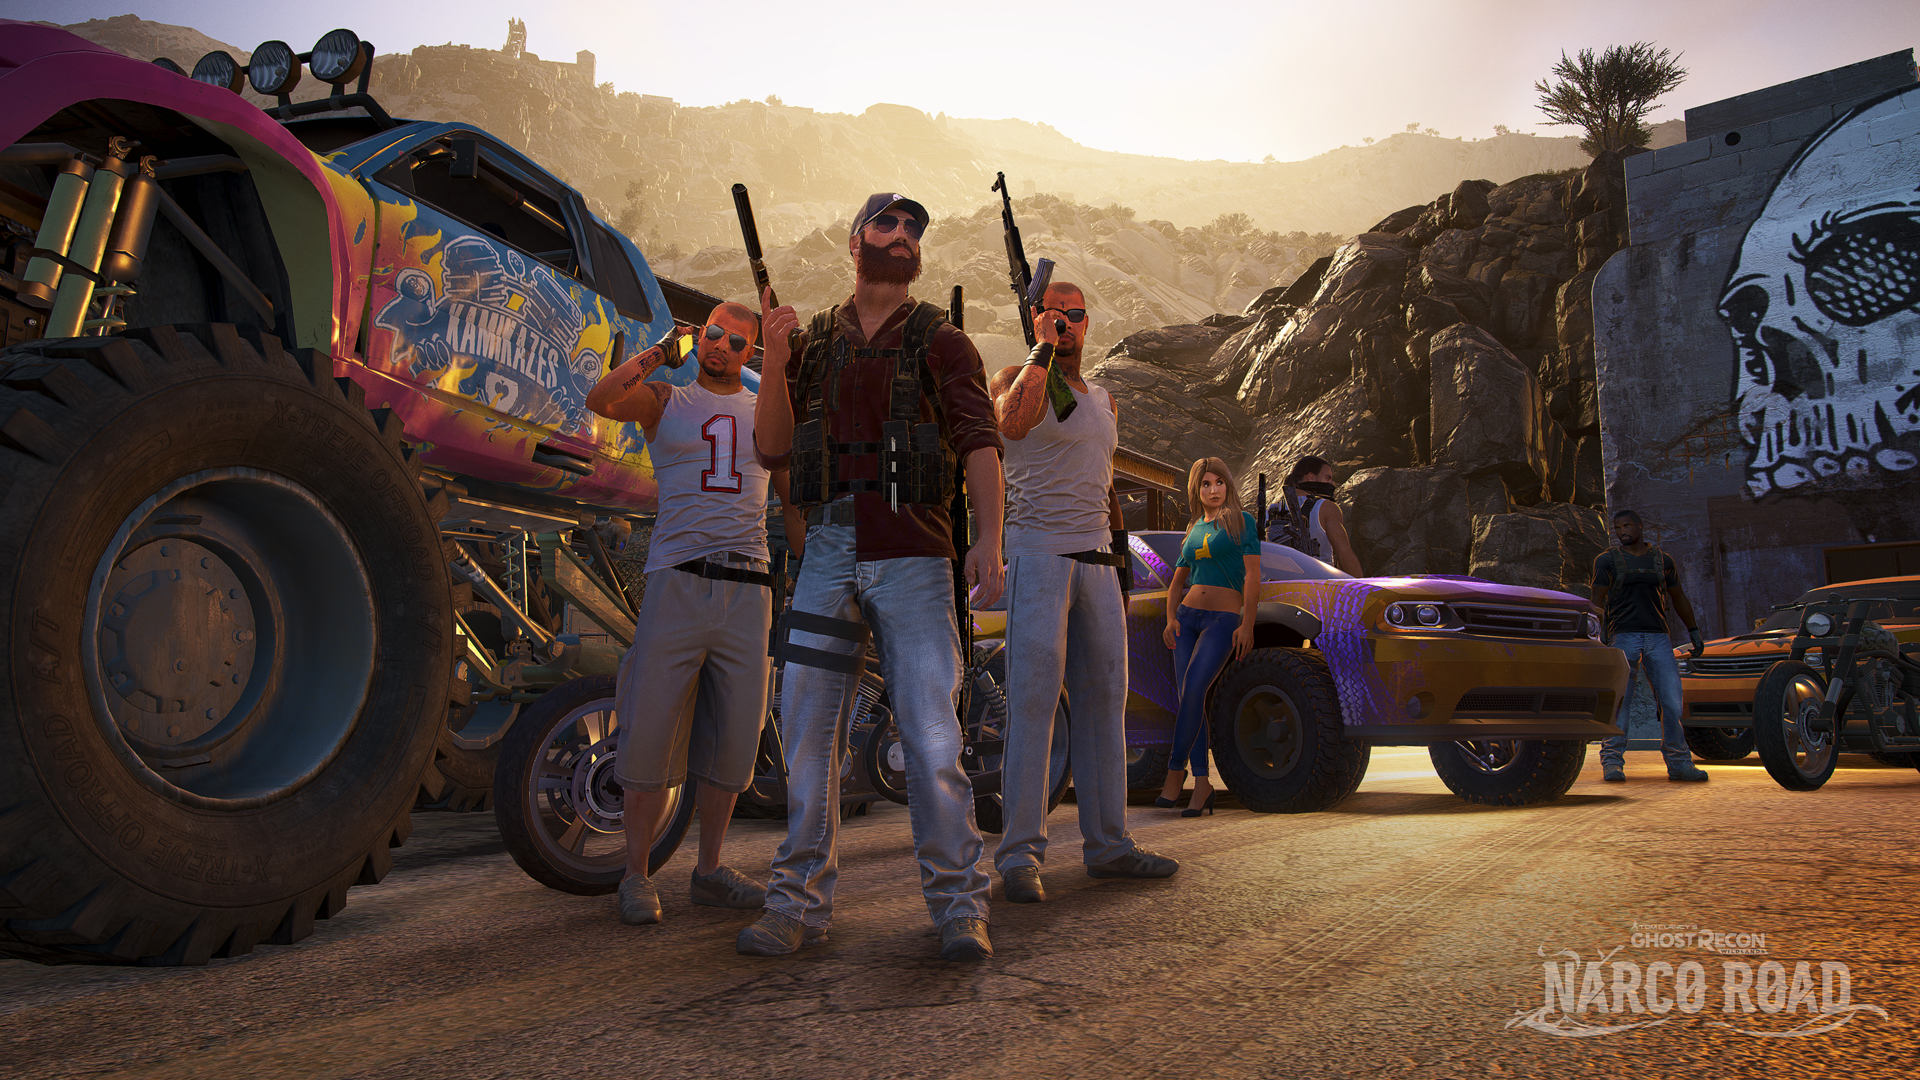 Narco Road sees you try and infiltrate the cartel and take them down from the inside